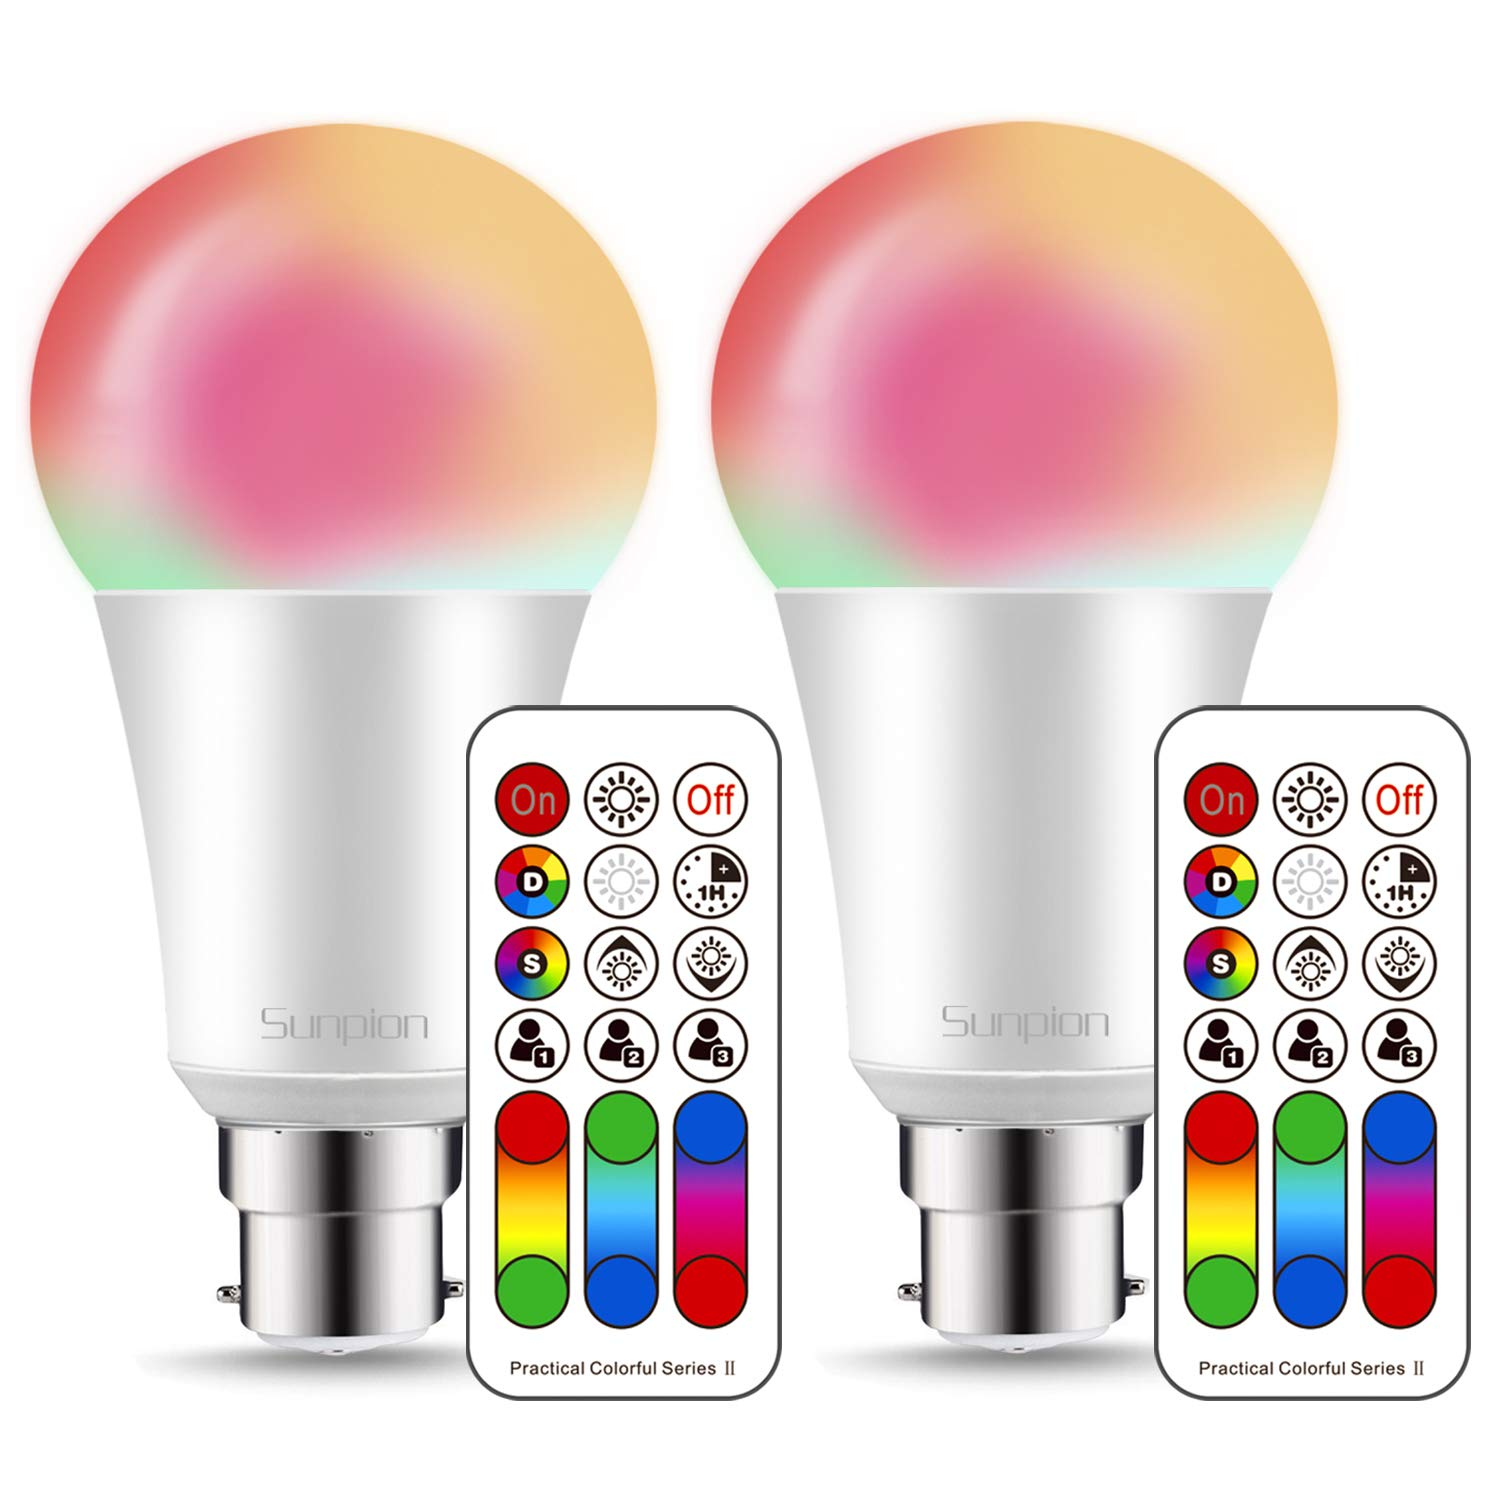 Colour Changing Led Bulb B22 10W Dimmable, Bayonet Colour Changing Light Bulb, 21key Remote Control, Dual Memory Function, Warm White(2700K) with 120 Color Choices Included Mood Ambiance Lighting Sunpion